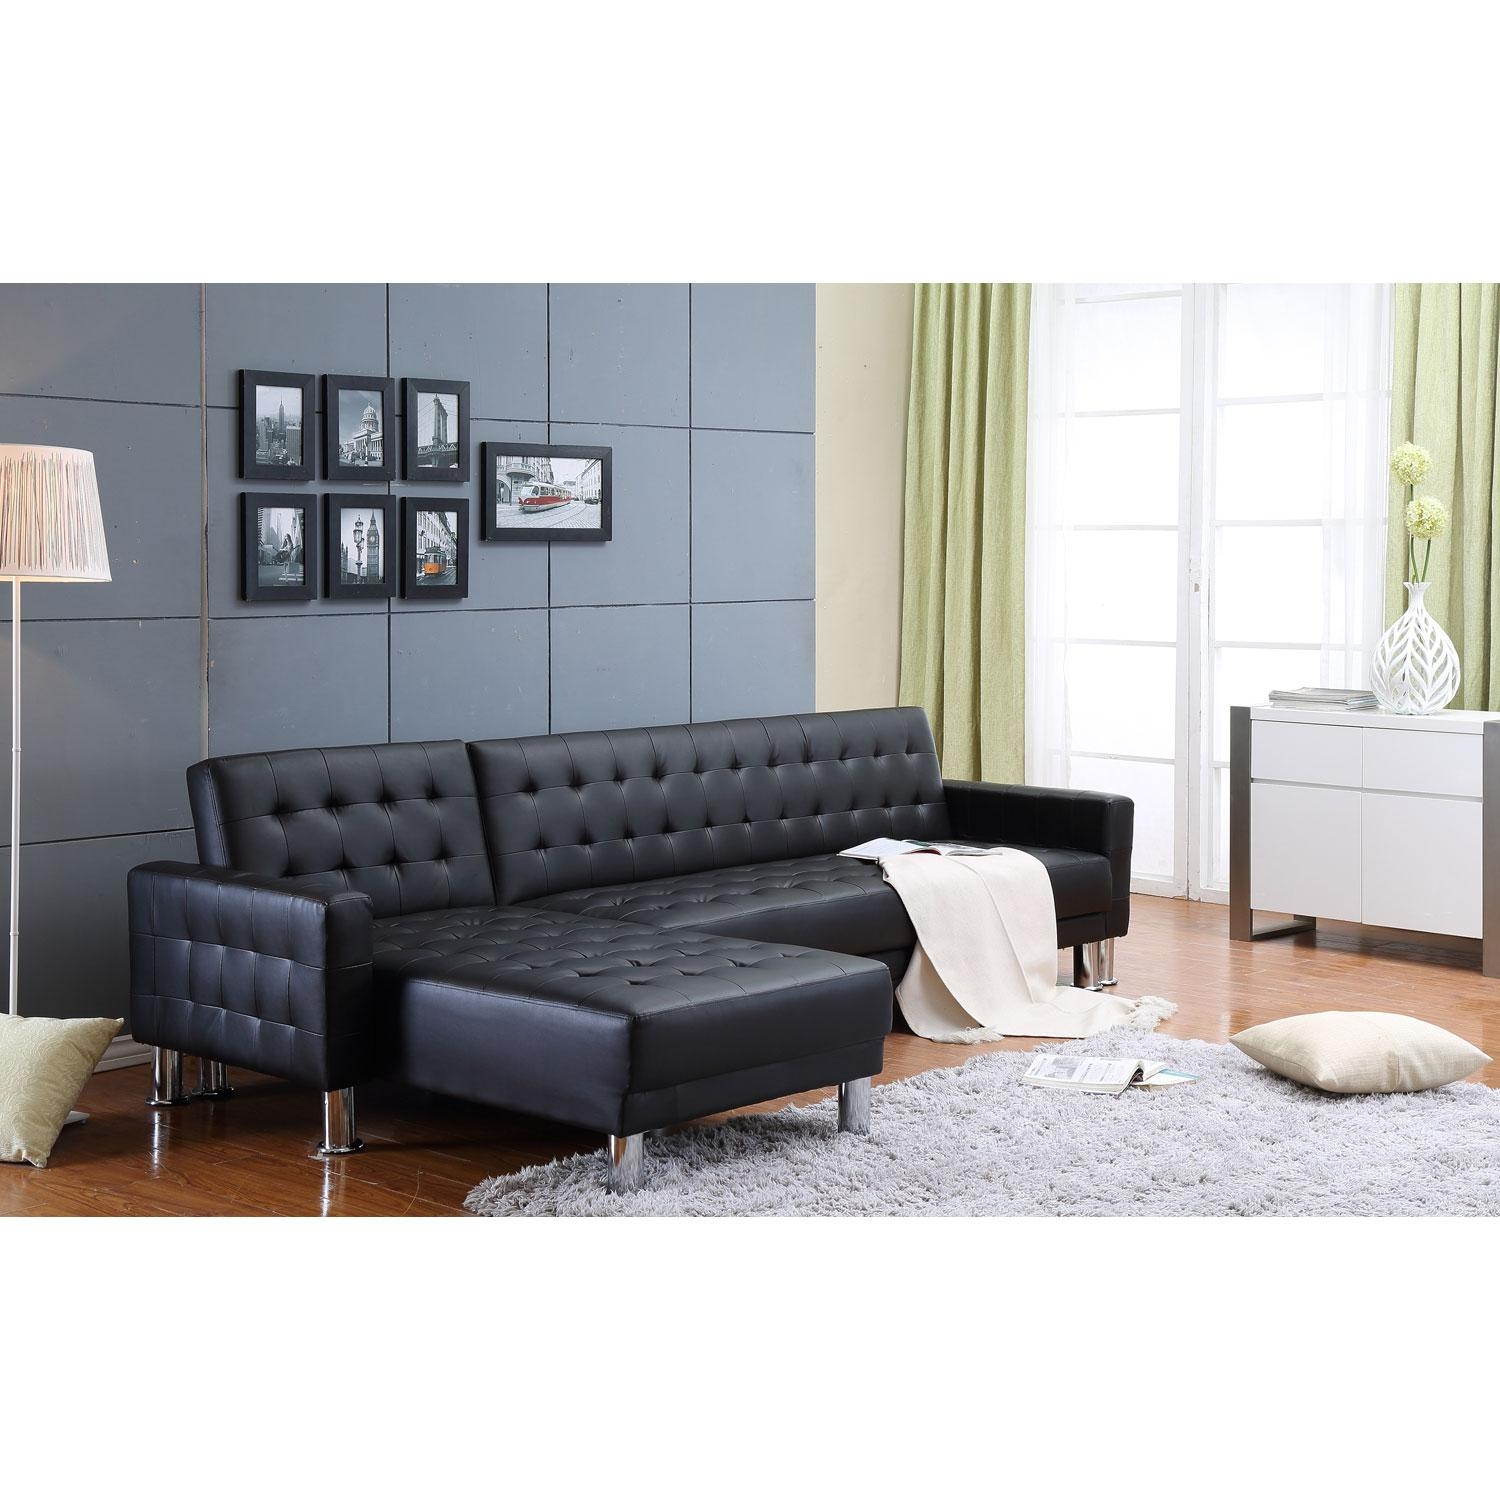 Marsden Black Tufted Bi Cast Leather 2 Piece Sectional Sofa Bed Within Individual Piece Sectional Sofas (View 13 of 20)